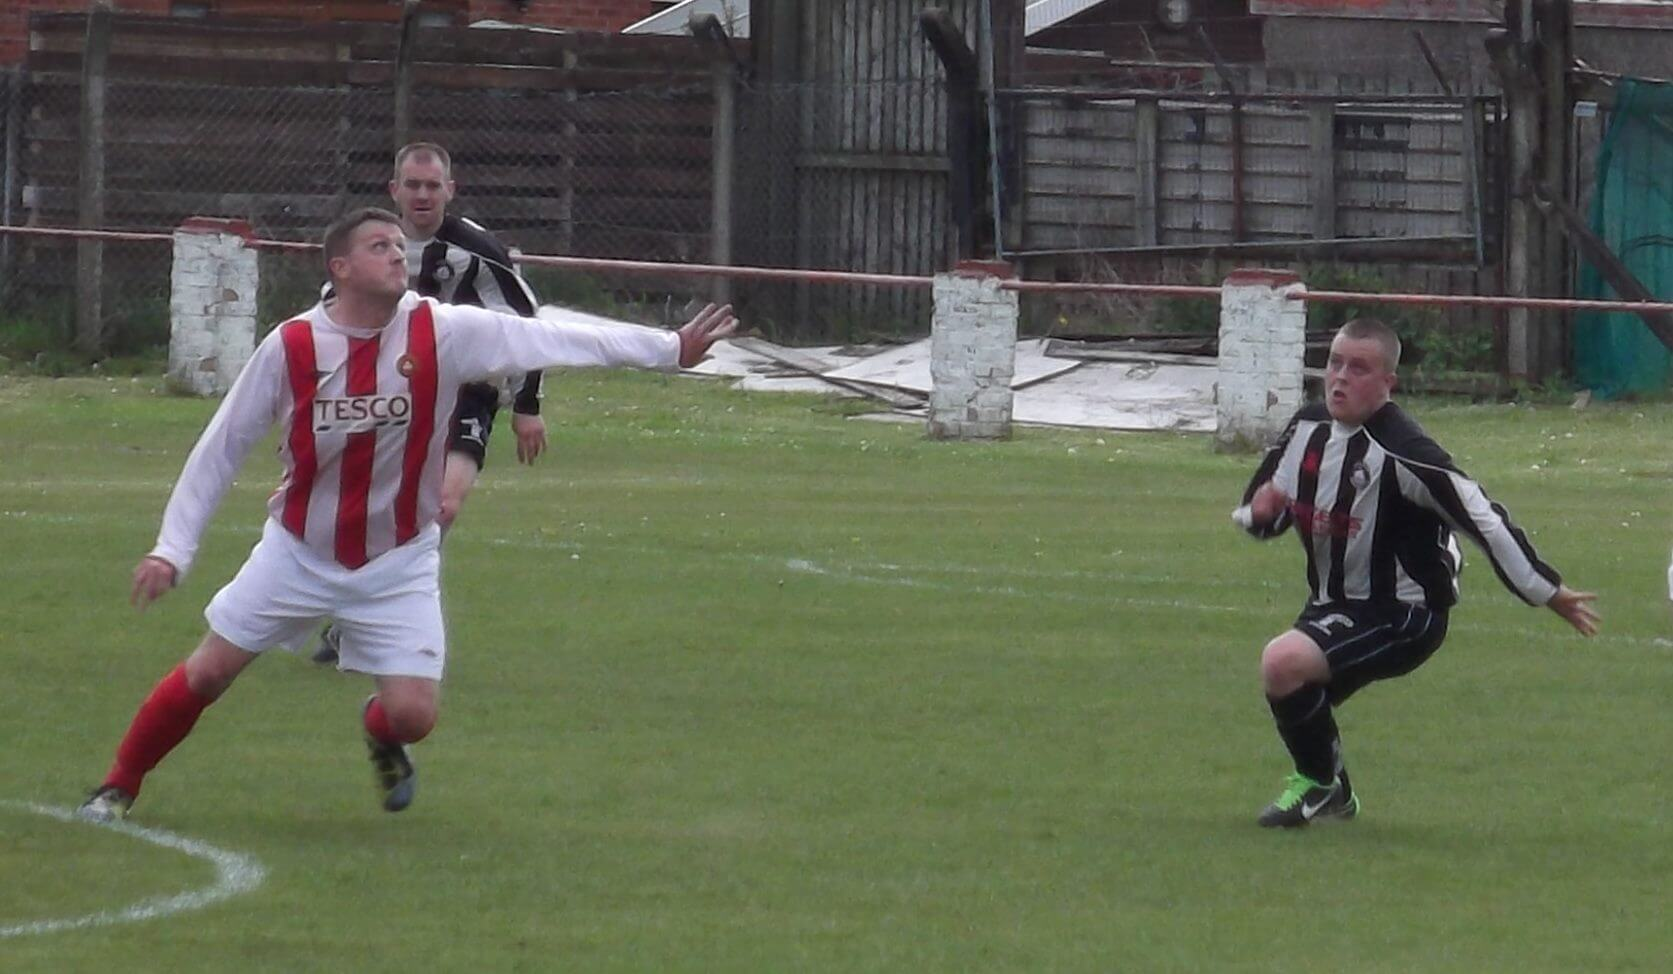 Mark Canning challenges for a ball in midfield